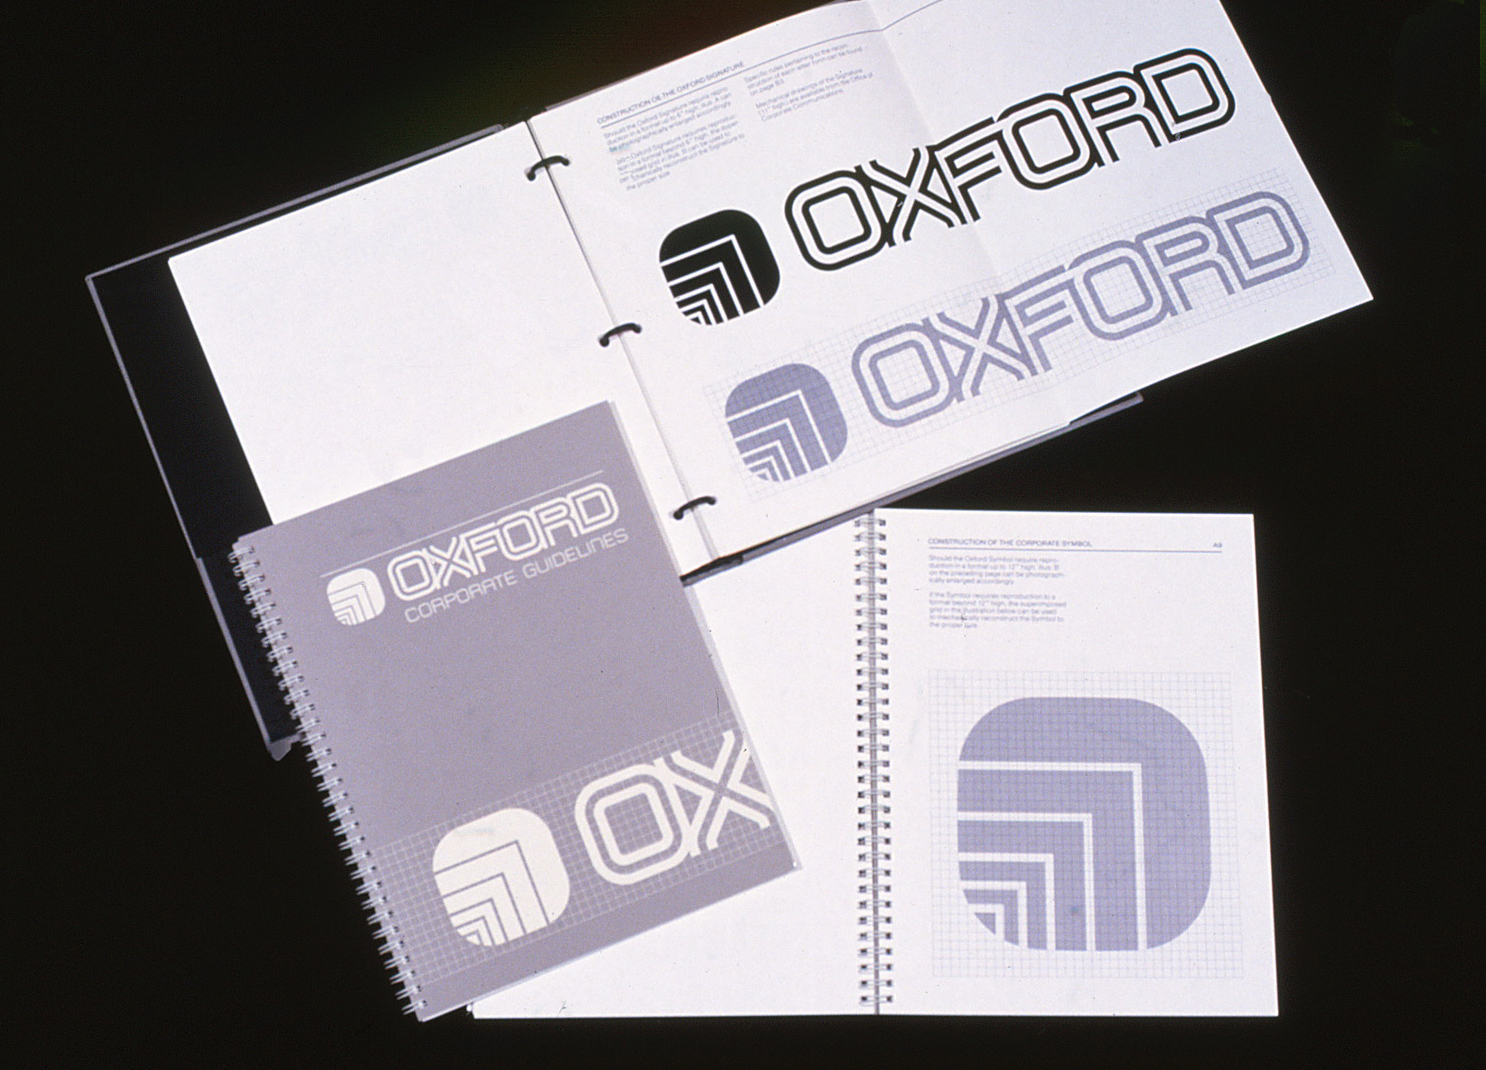 The Oxford Graphic Standards Manual shown indifferent layouts, opened and closed.